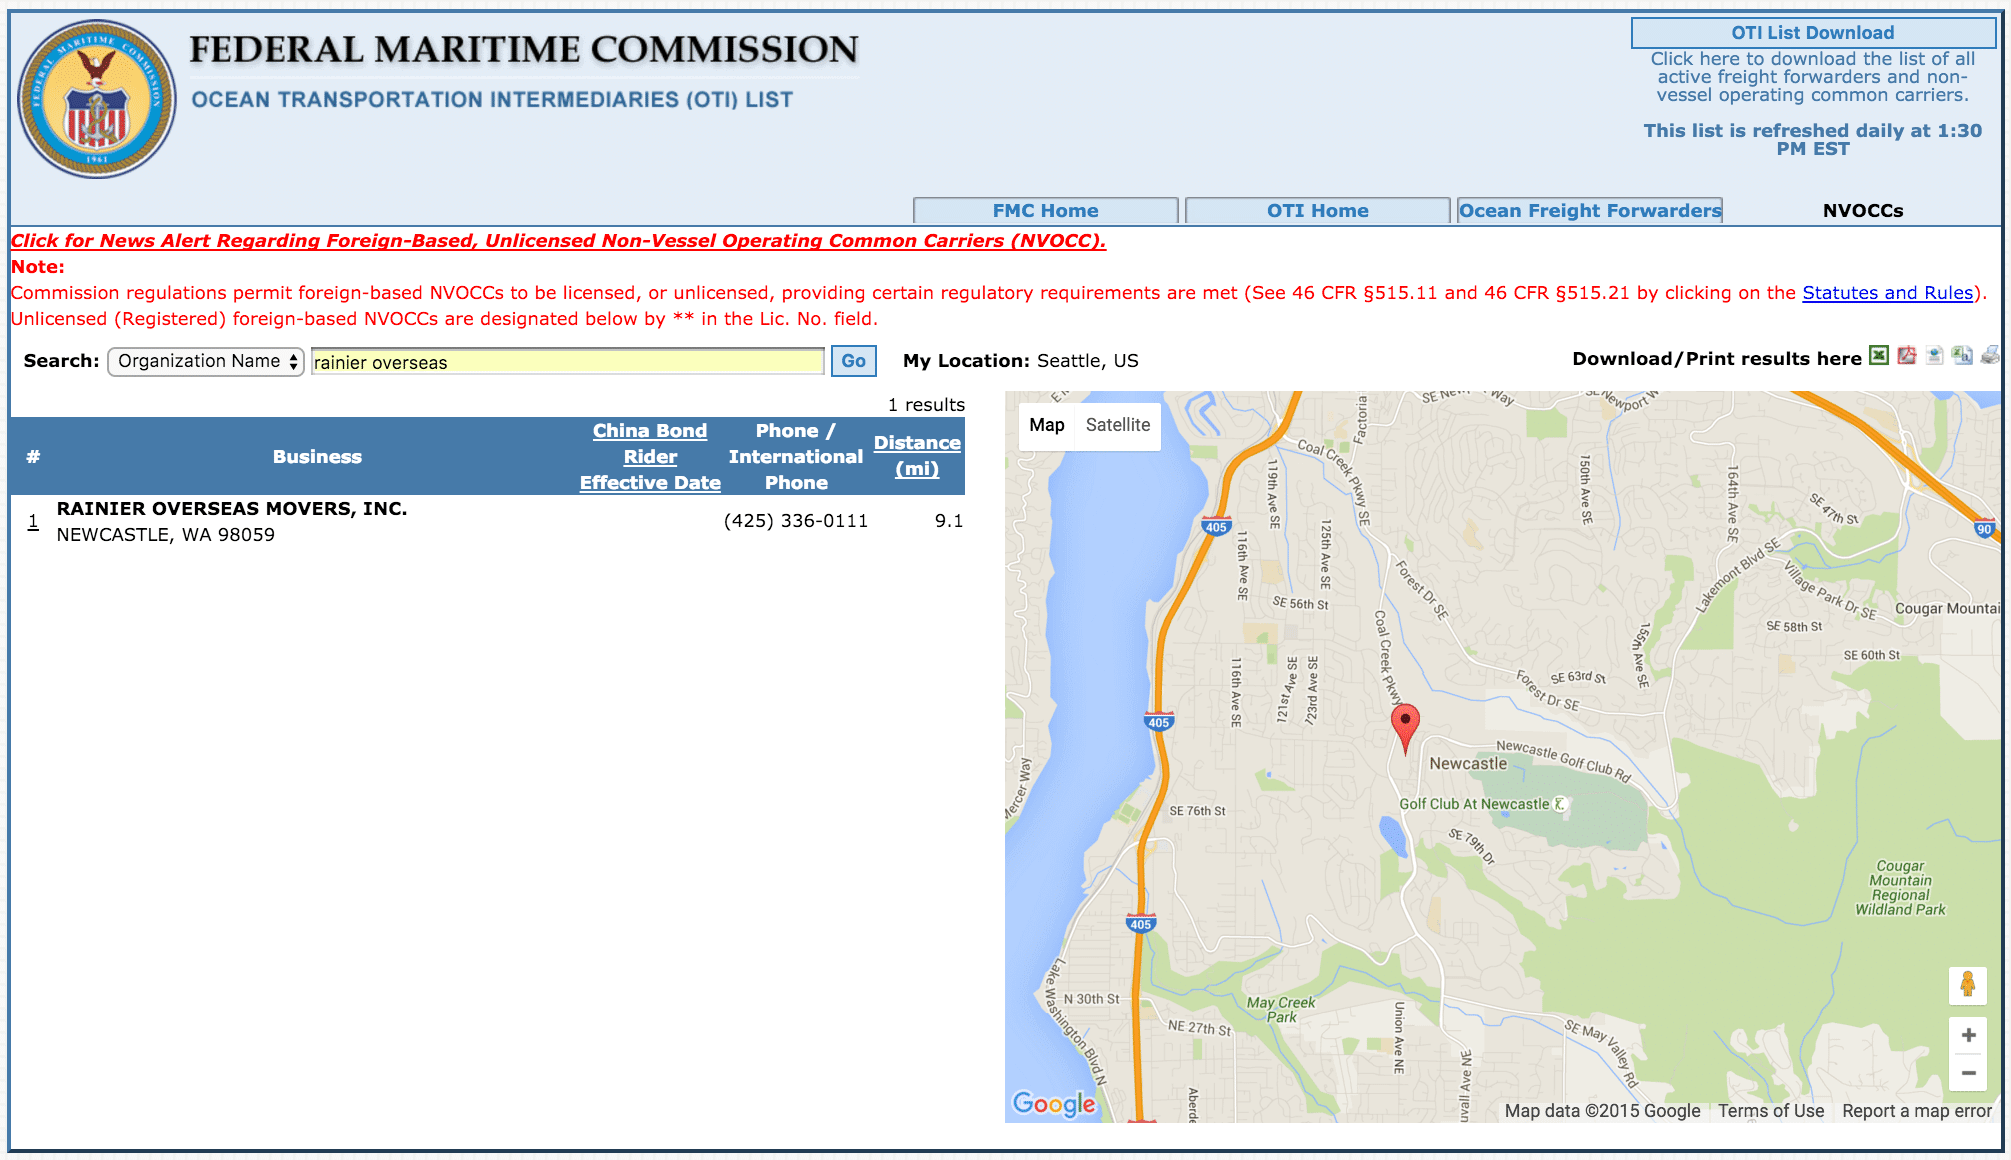 Rainier Overseas Federal Maritime Commission Listing